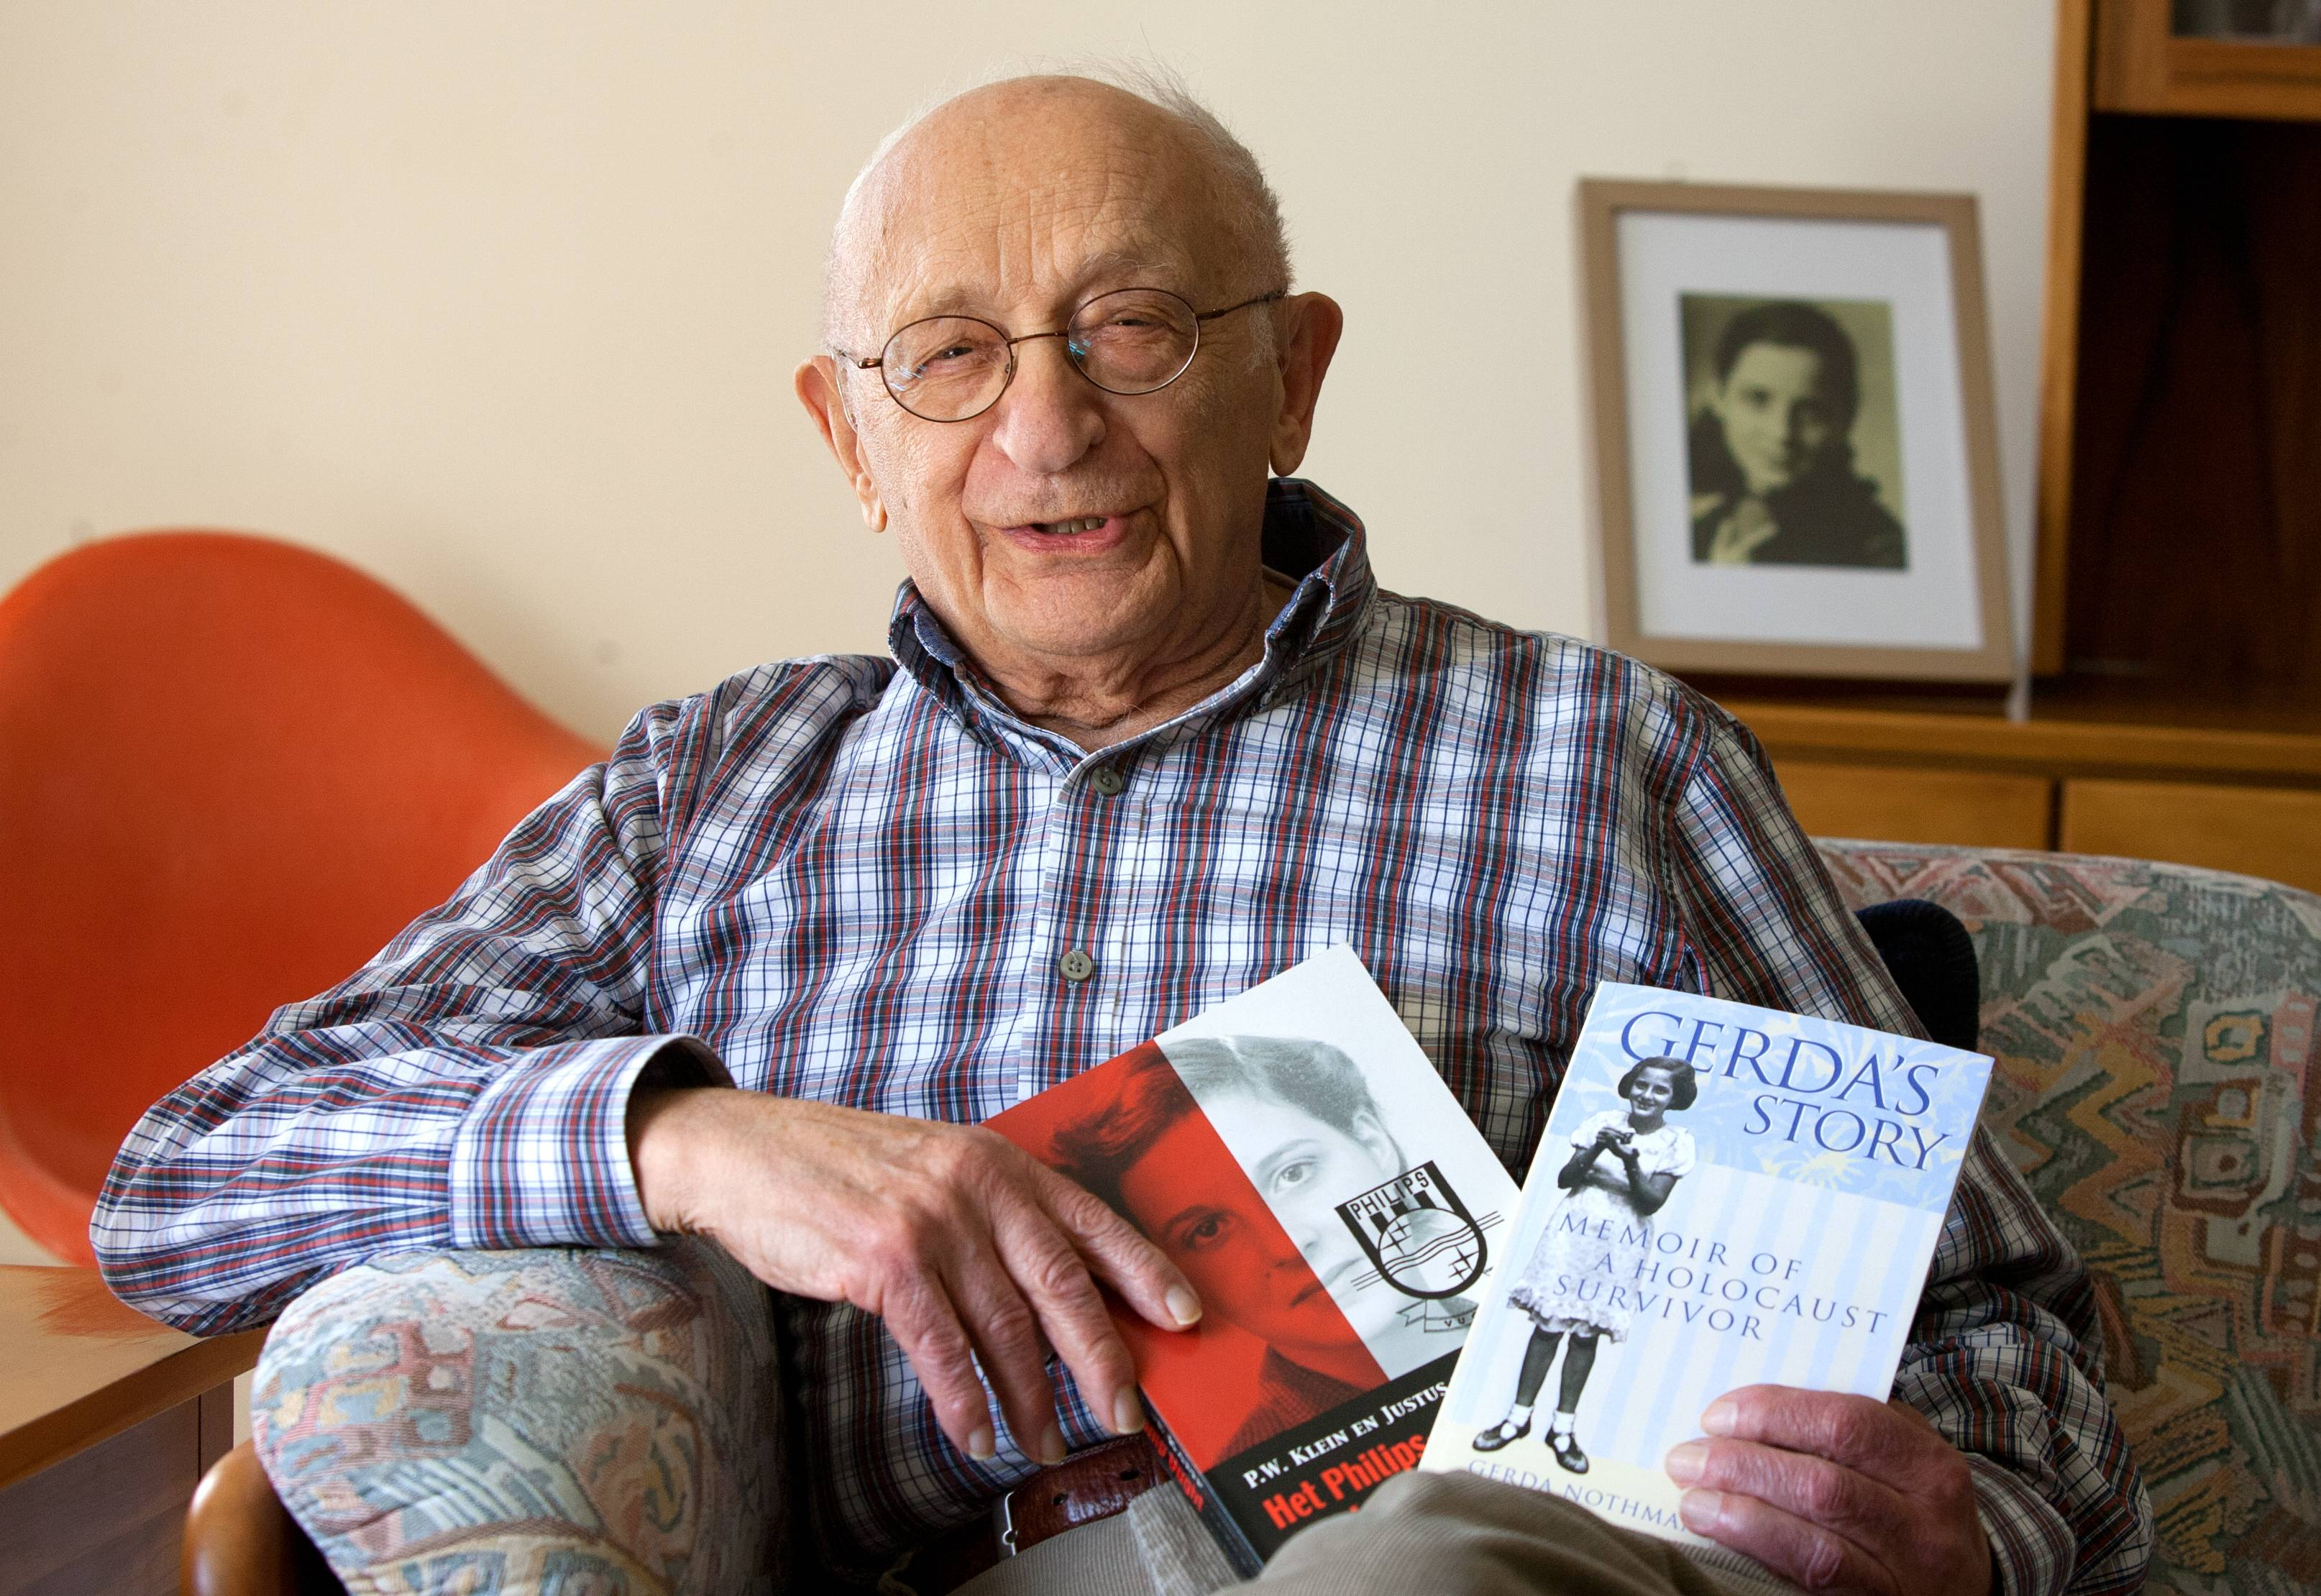 Holding books that tell how his late wife, Gerda Nothmann Luner, survived the Holocaust, Charles Luner has seen the book of letters he compiled performed as a stage play.